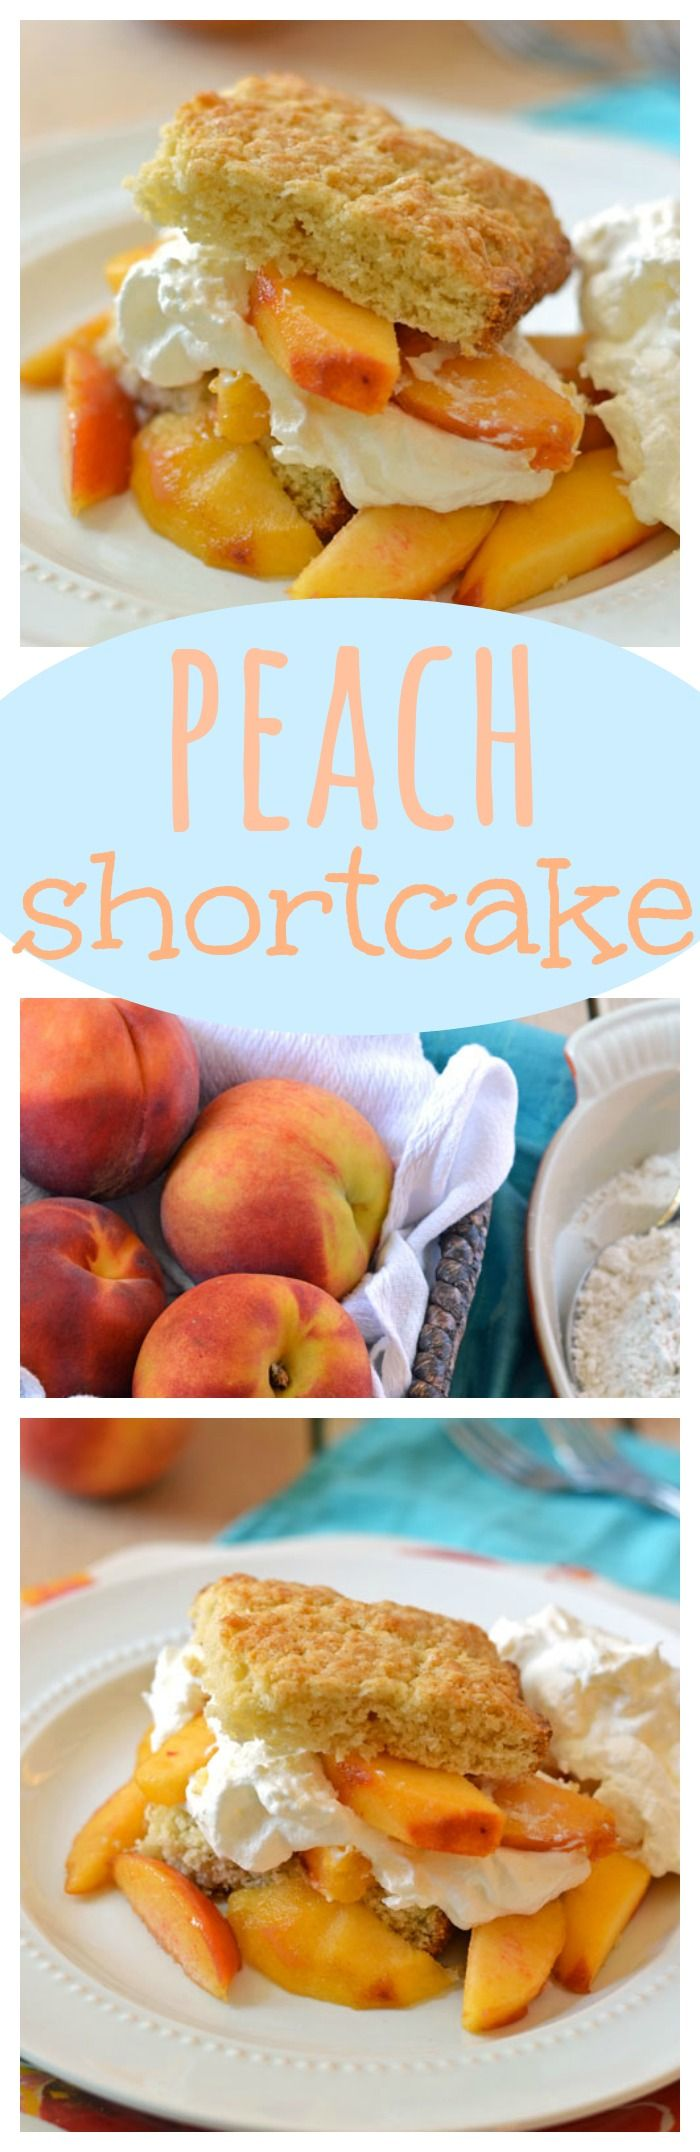 Peach Shortcake. Summer doesn't get any better than this buttery shortcake with fresh peaches and real whipped cream!